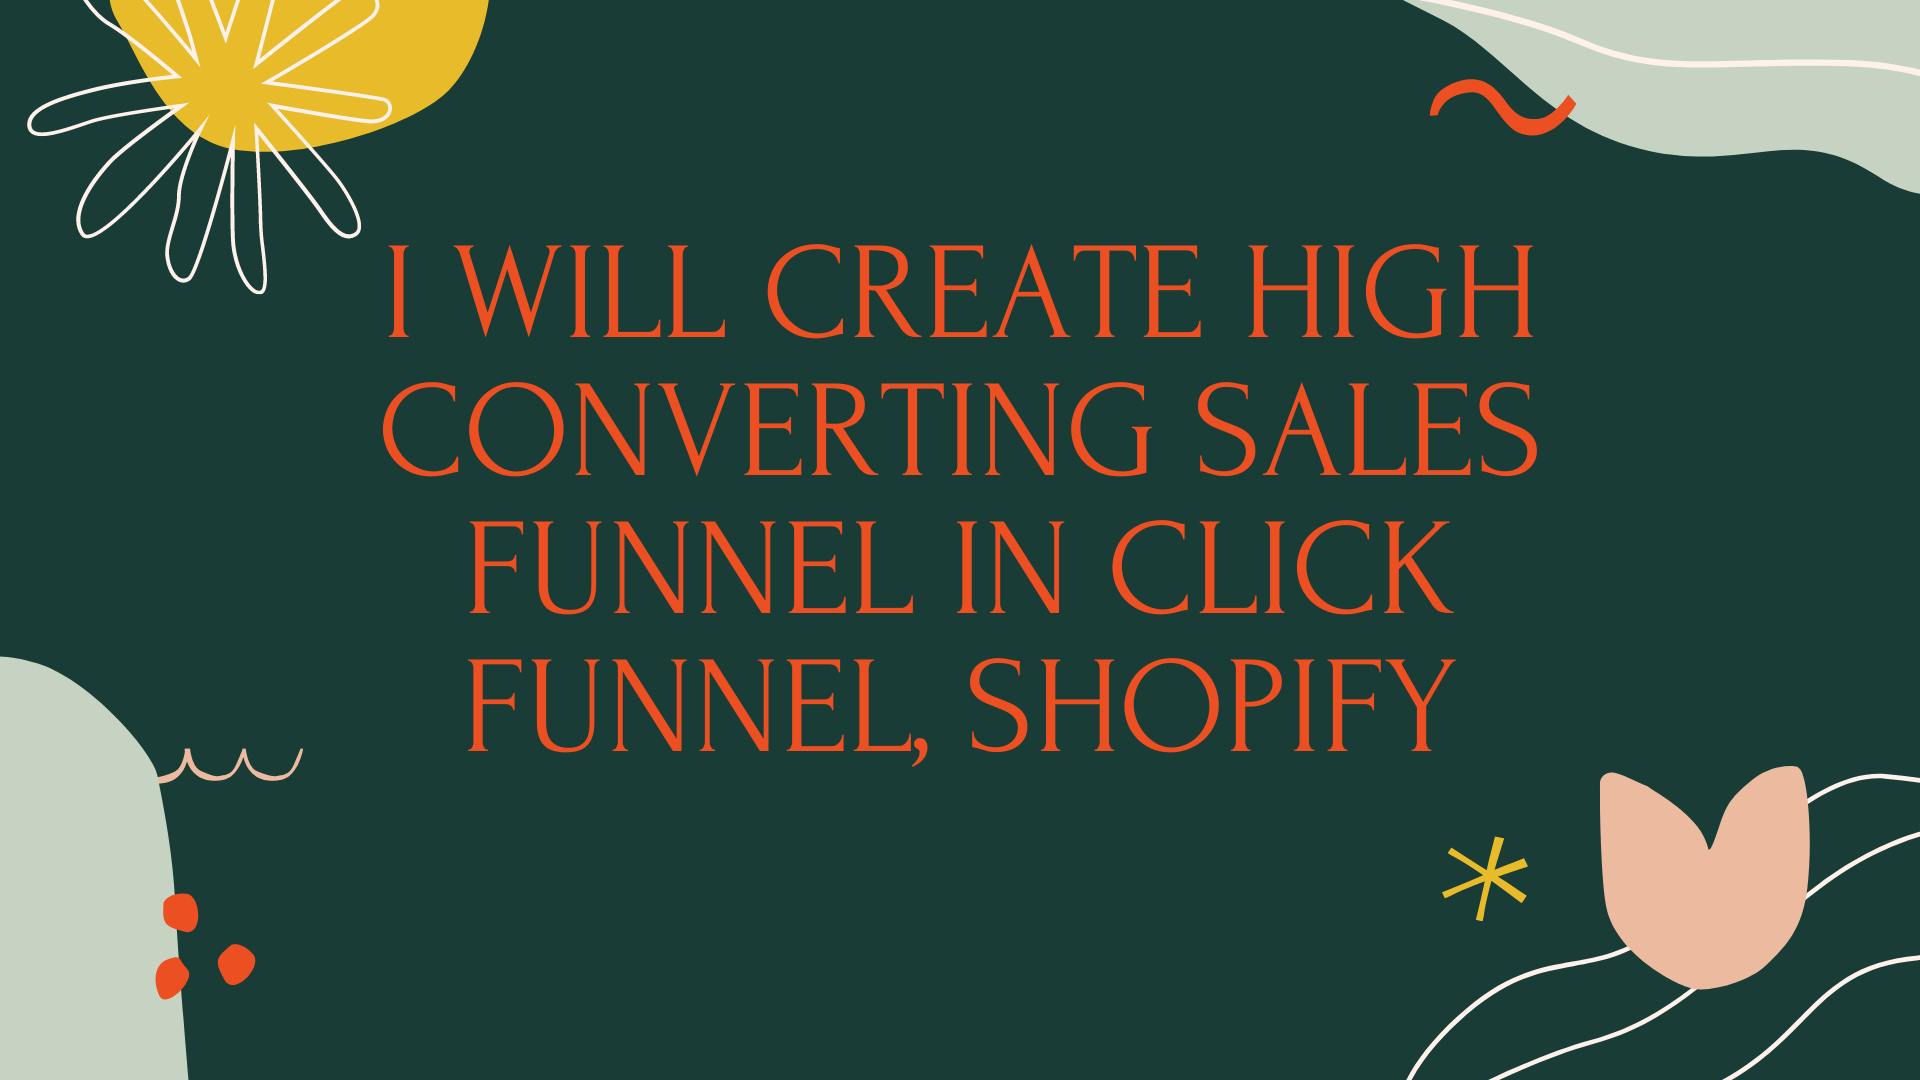 I will create high converting sales funnel in click funnel, shopify, FiverrBox